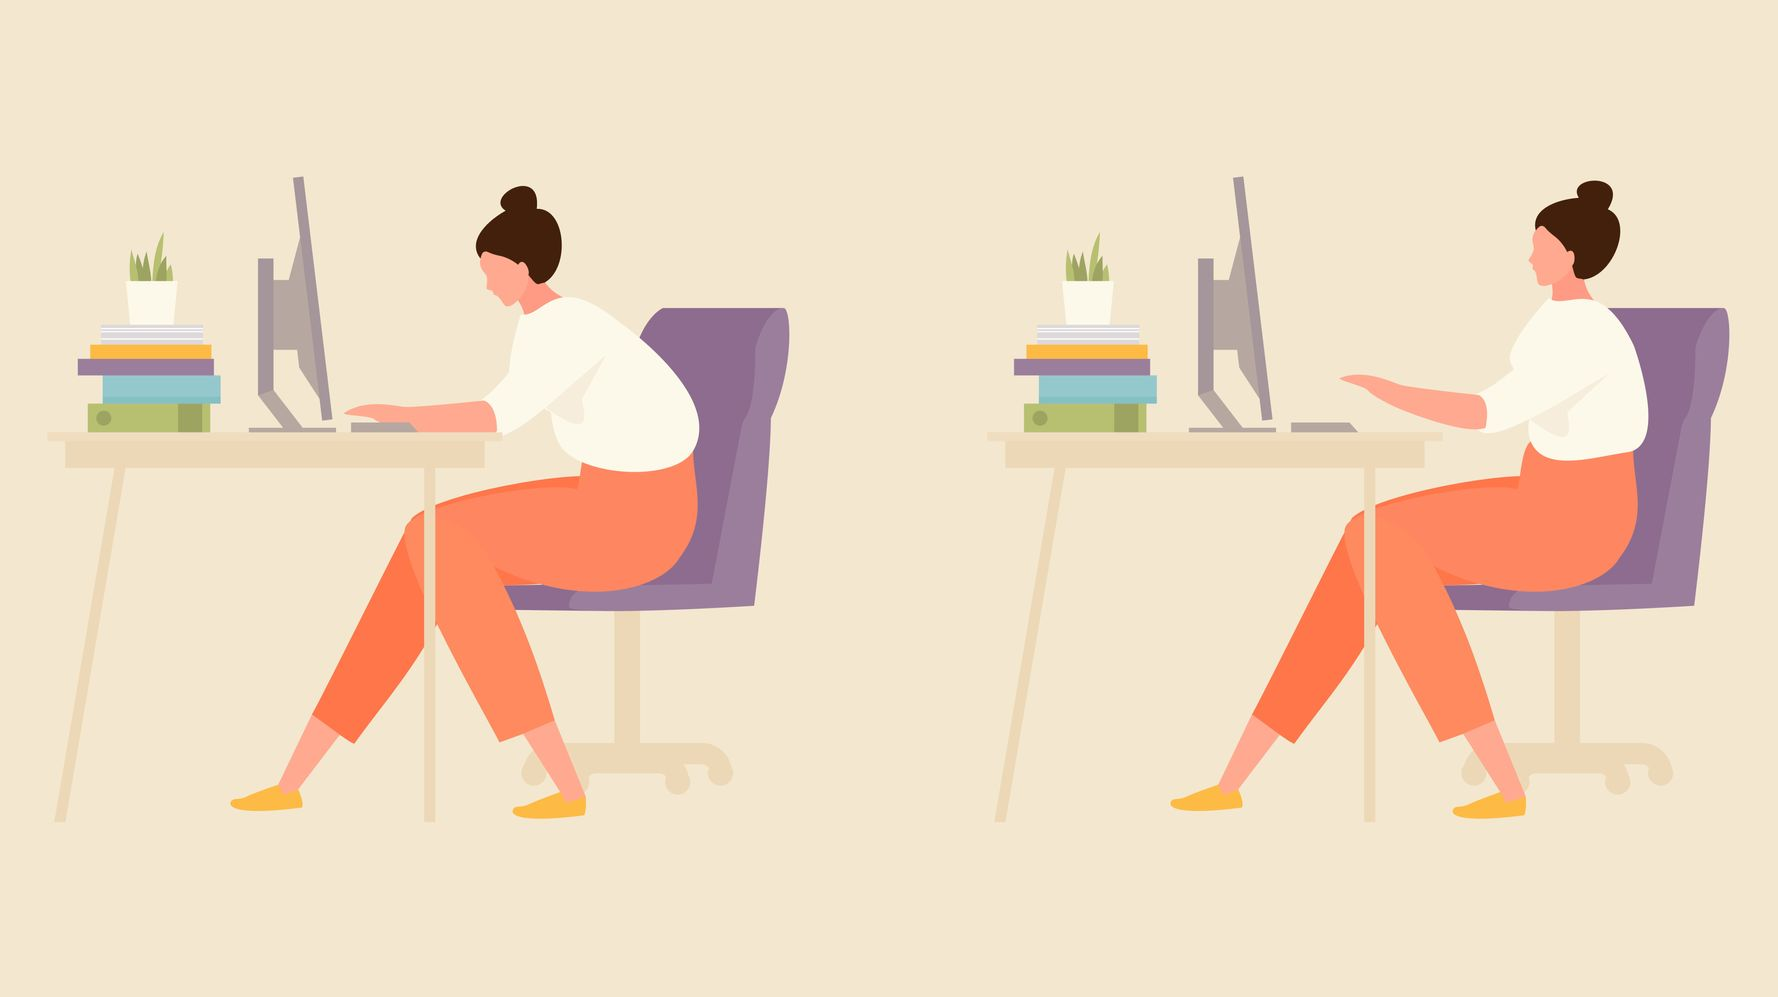 How To Improve Your Posture With Small, Day-To-Day Changes